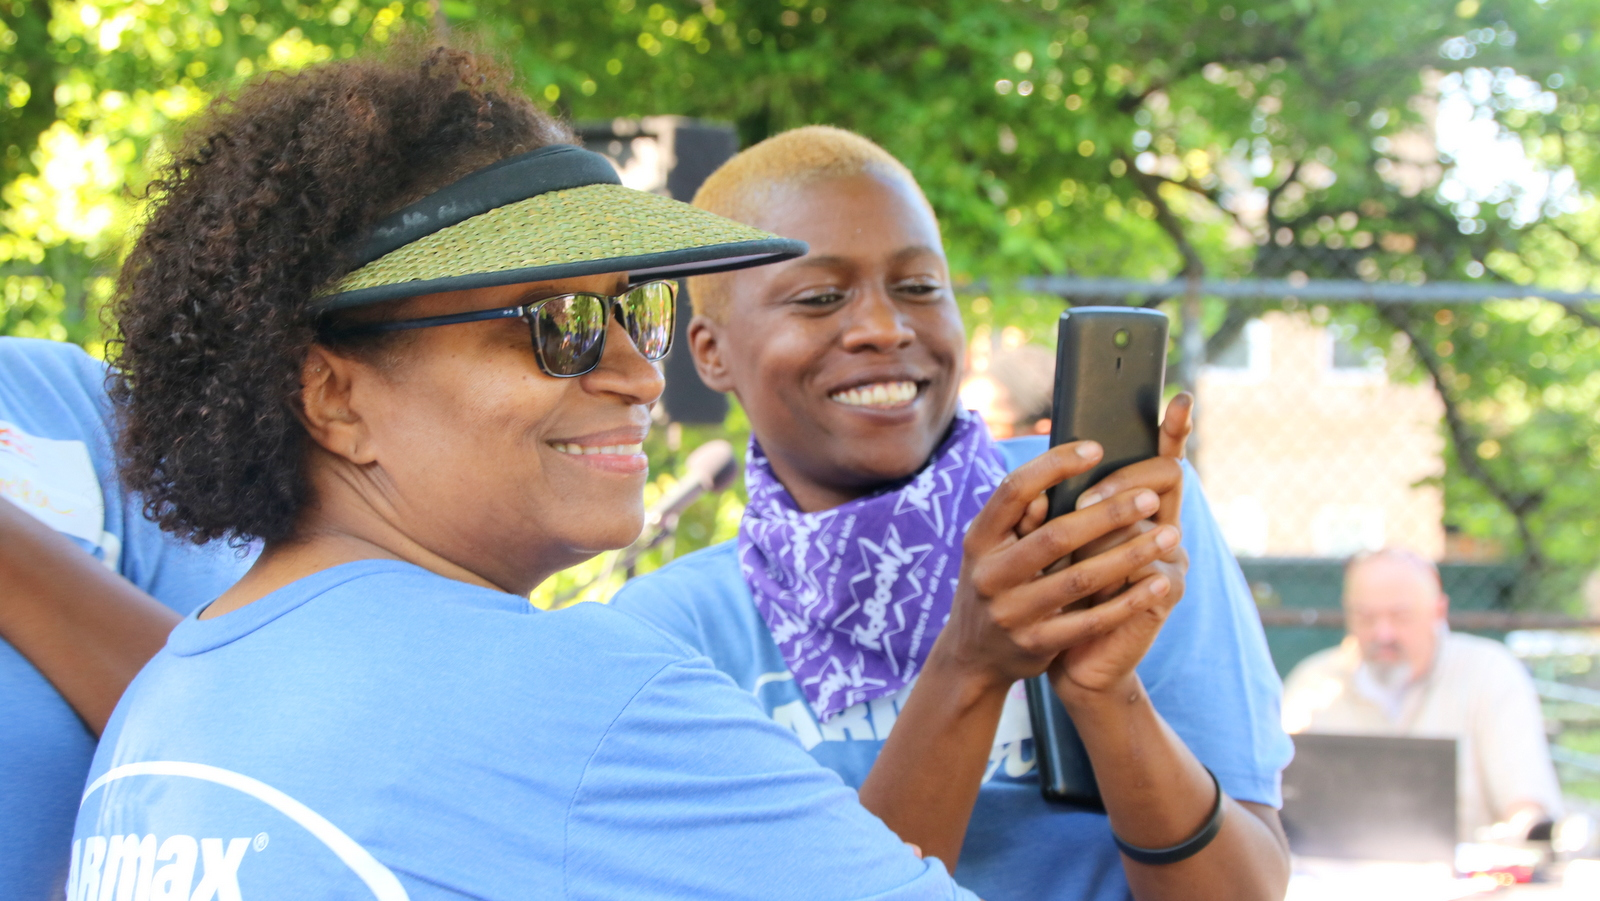 Neighborhood volunteers Charlene Couch and Kisha Scott capture the moment as the playground build begins. (Fern Shen)